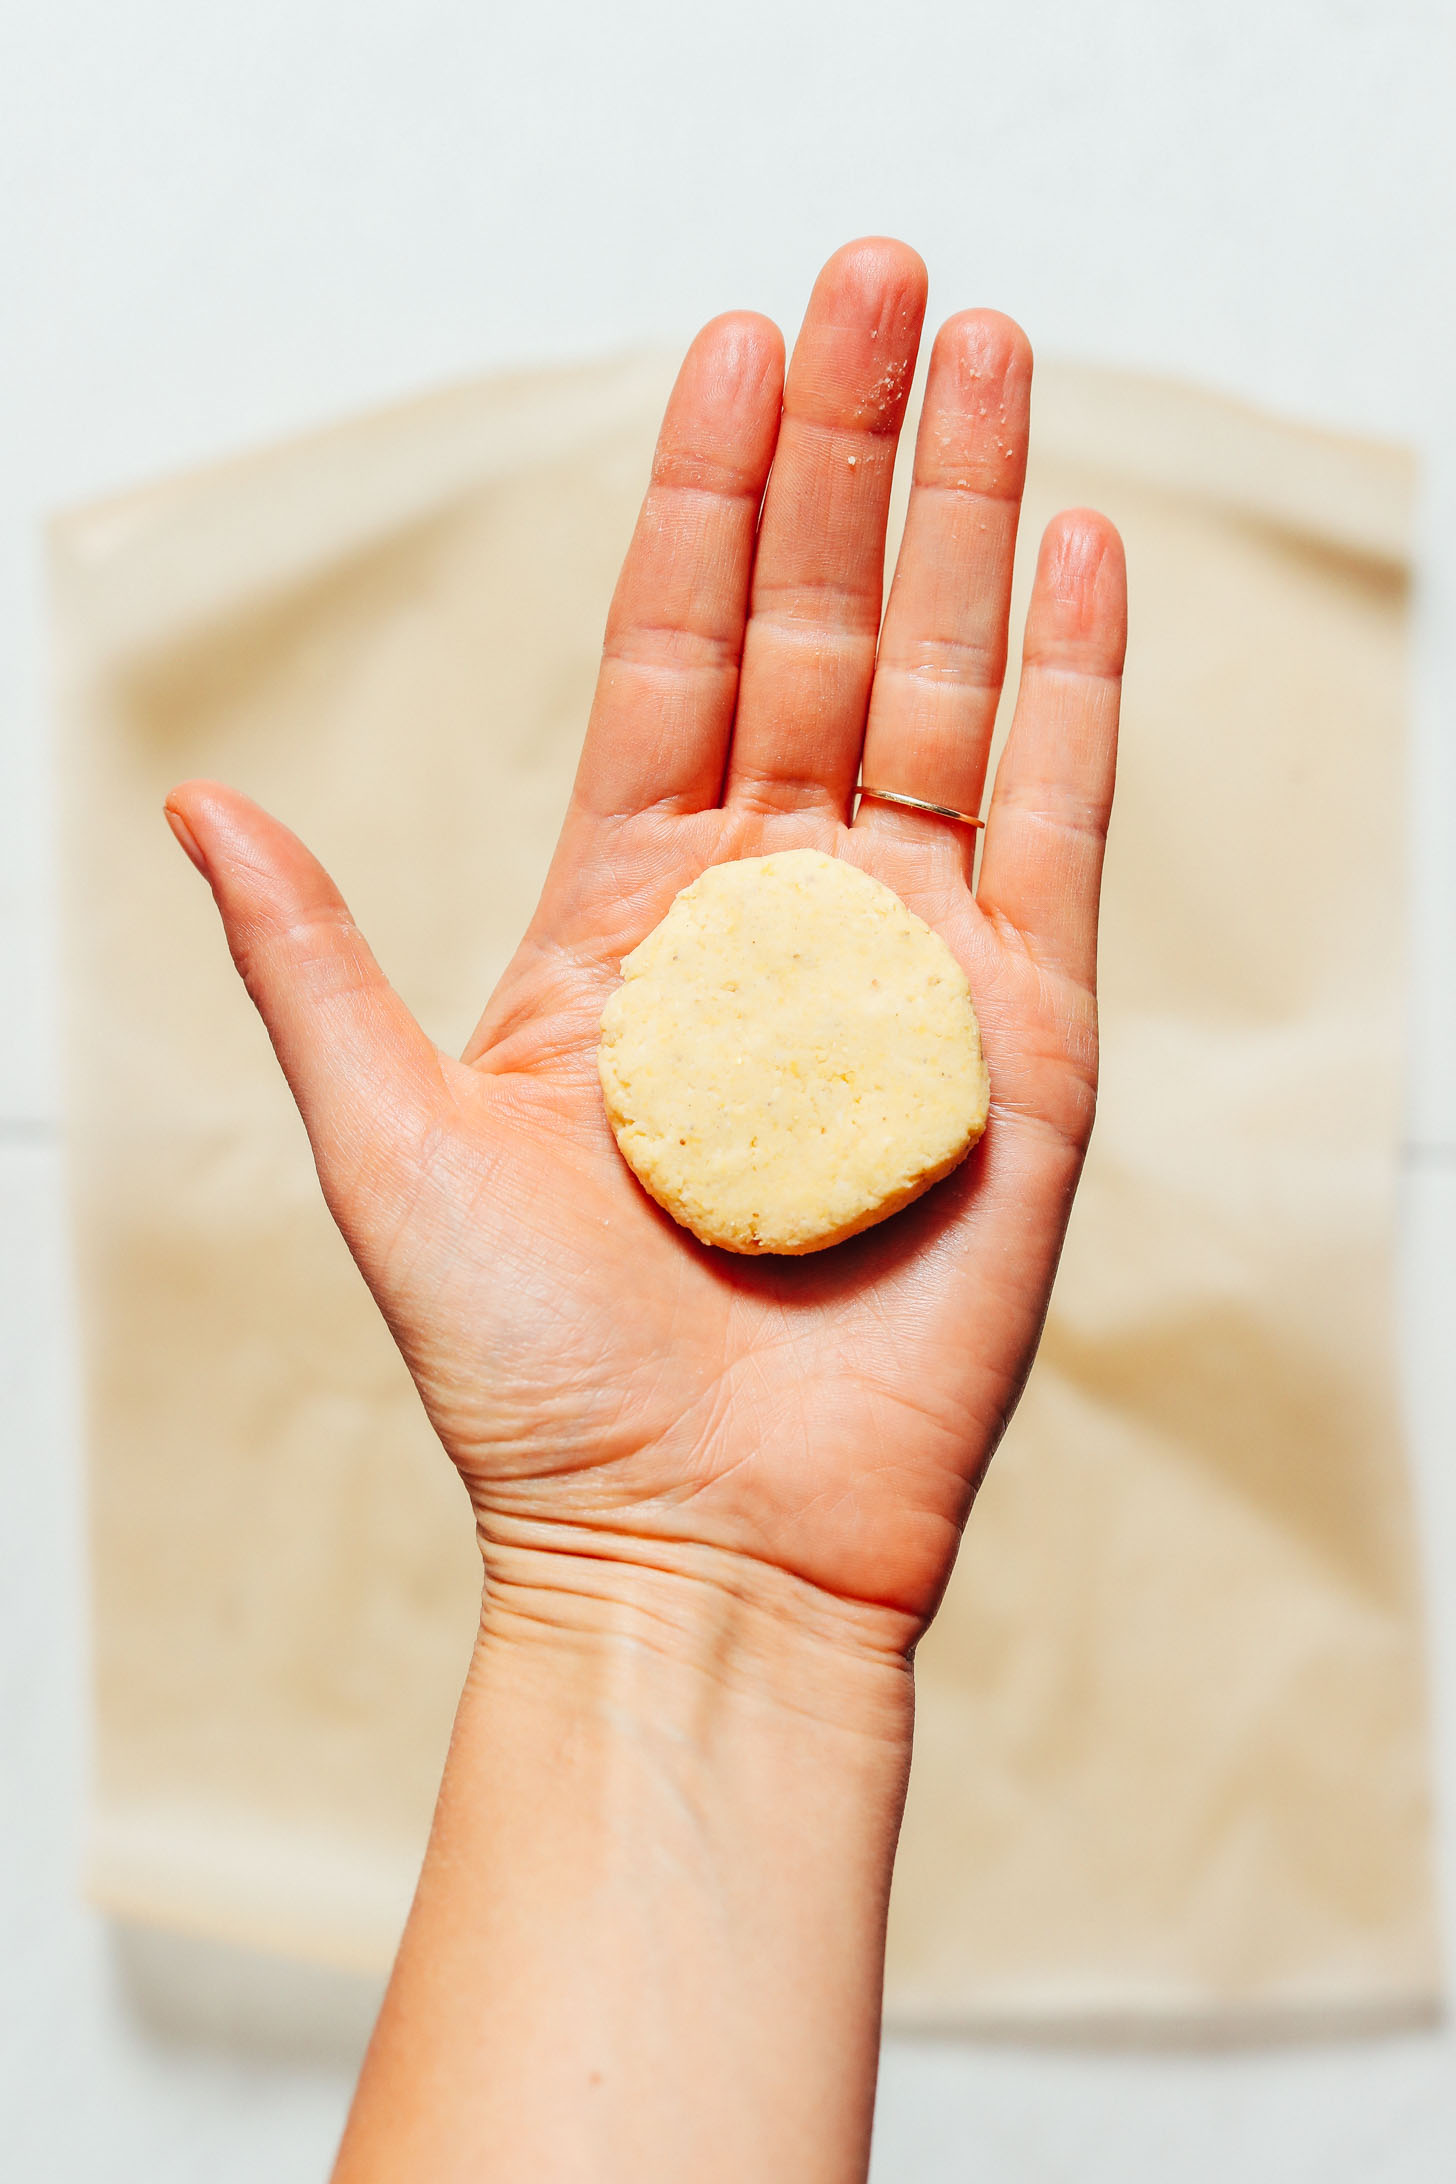 Holding a circle of corn tortilla dough for our tutorial on How to Make Tortillas